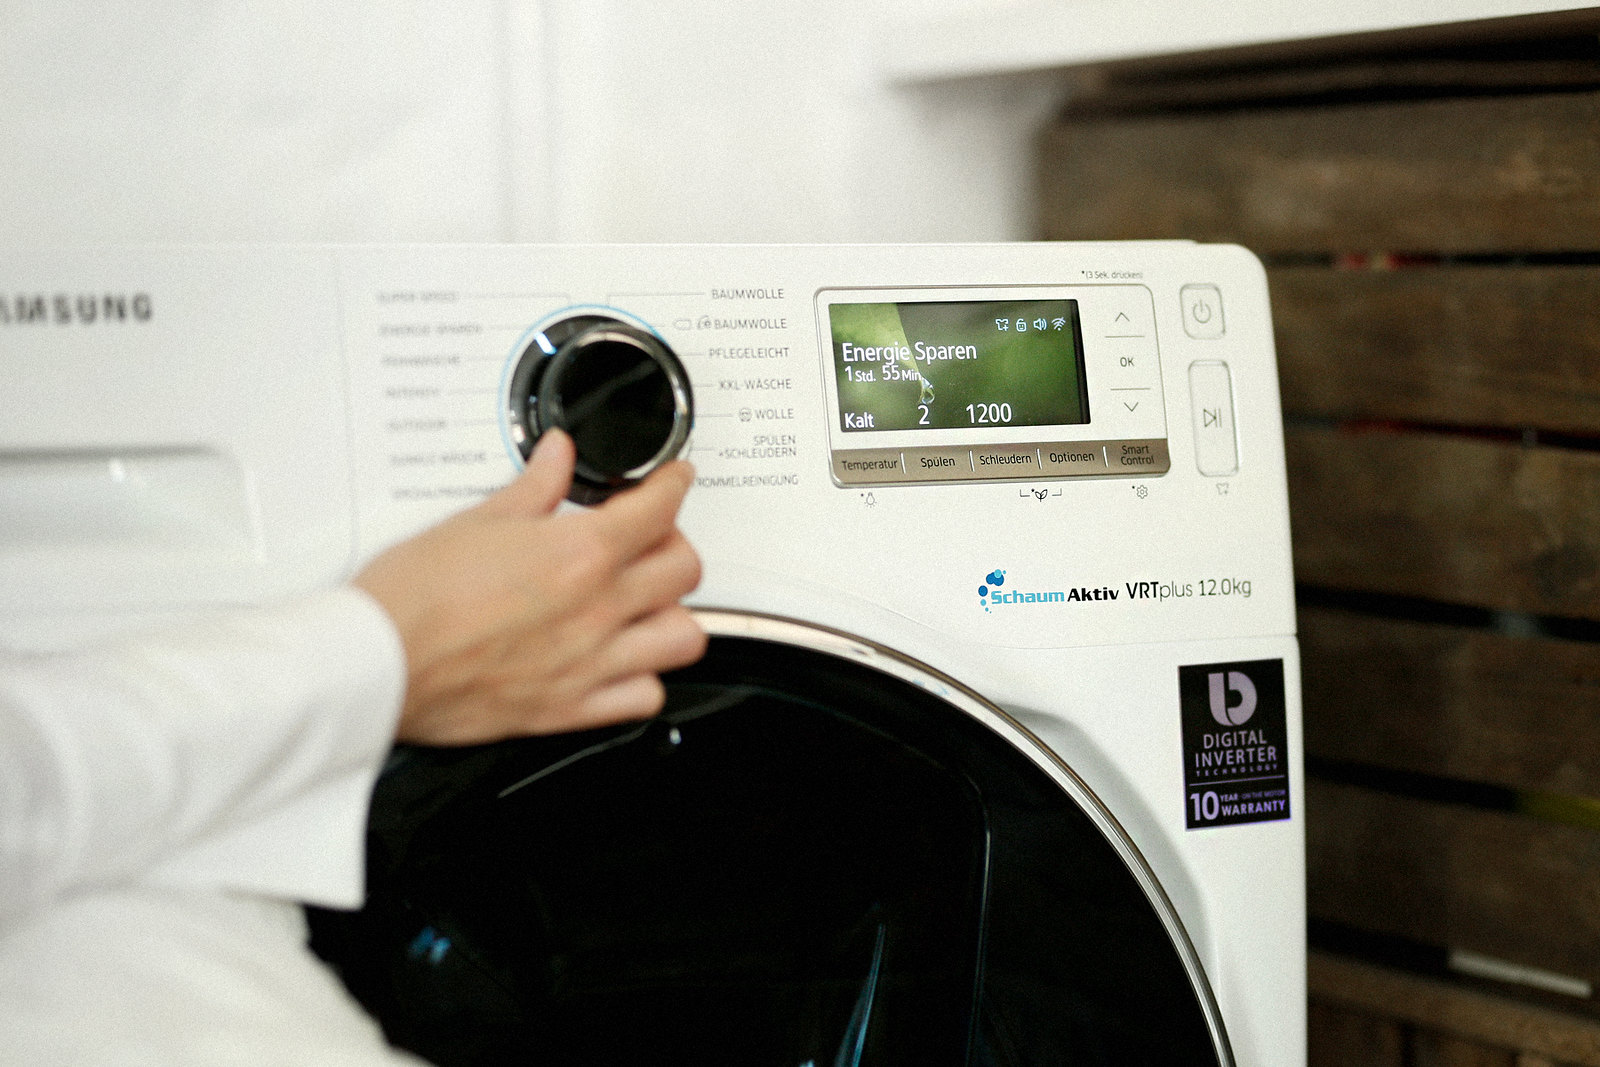 samsung addwash waschmaschine washing machine how to wash laundry wäsche tipps modeblog modeblogger ricarda schernus cats & dogs blog düsseldorf 6